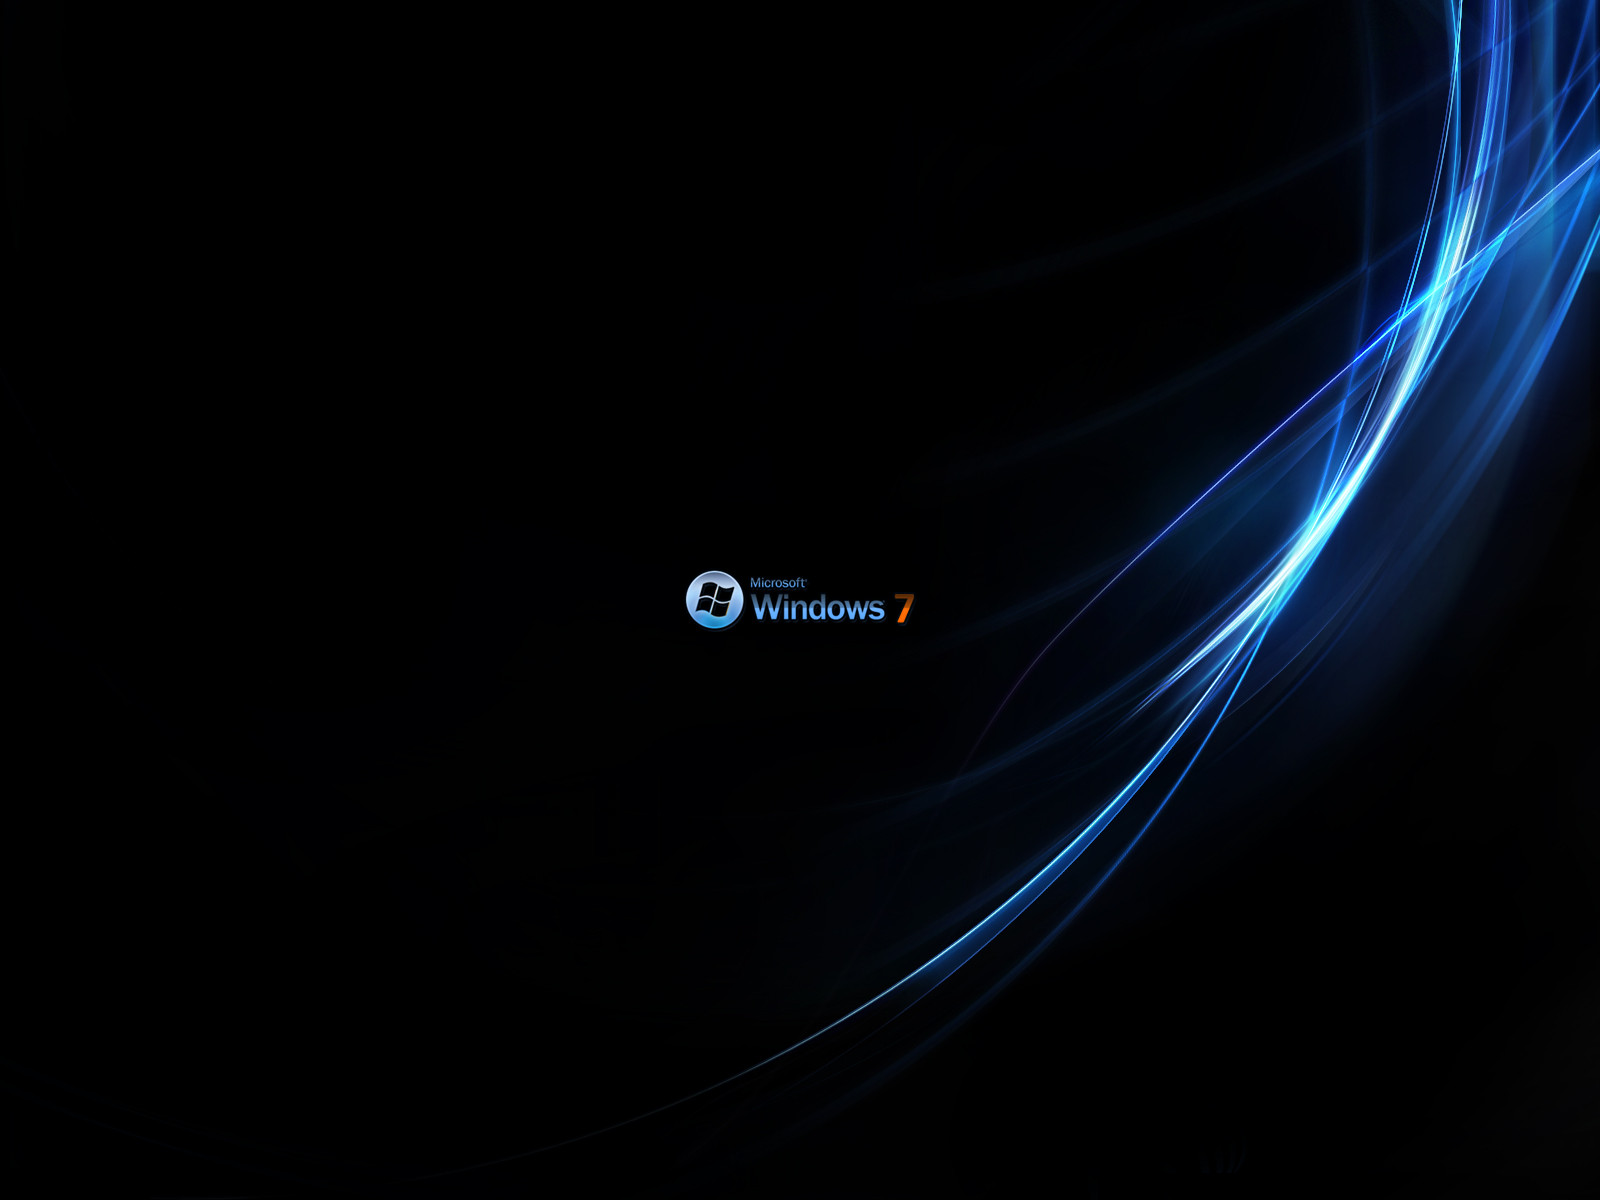 http://2.bp.blogspot.com/-8OmU8Zni4o4/Tau0bGpE5KI/AAAAAAAAAEg/Air6_GQ-9Kg/s1600/windows-7-blue-orange-black-wallpaper.jpg